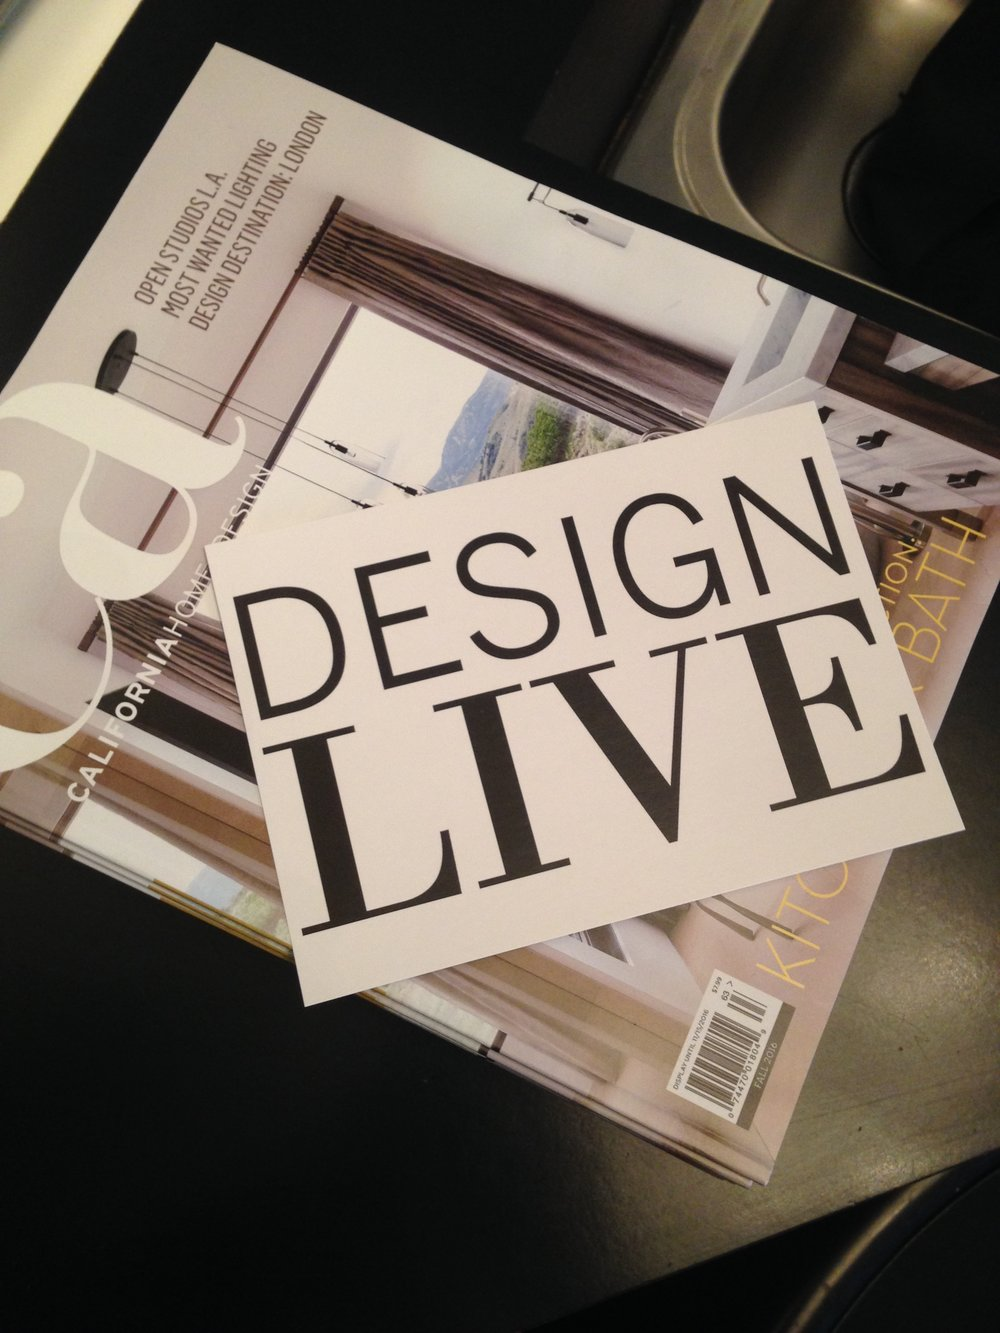 DesignLive sponsored by Califonia Home & Design and Organized by Coupar Consulting